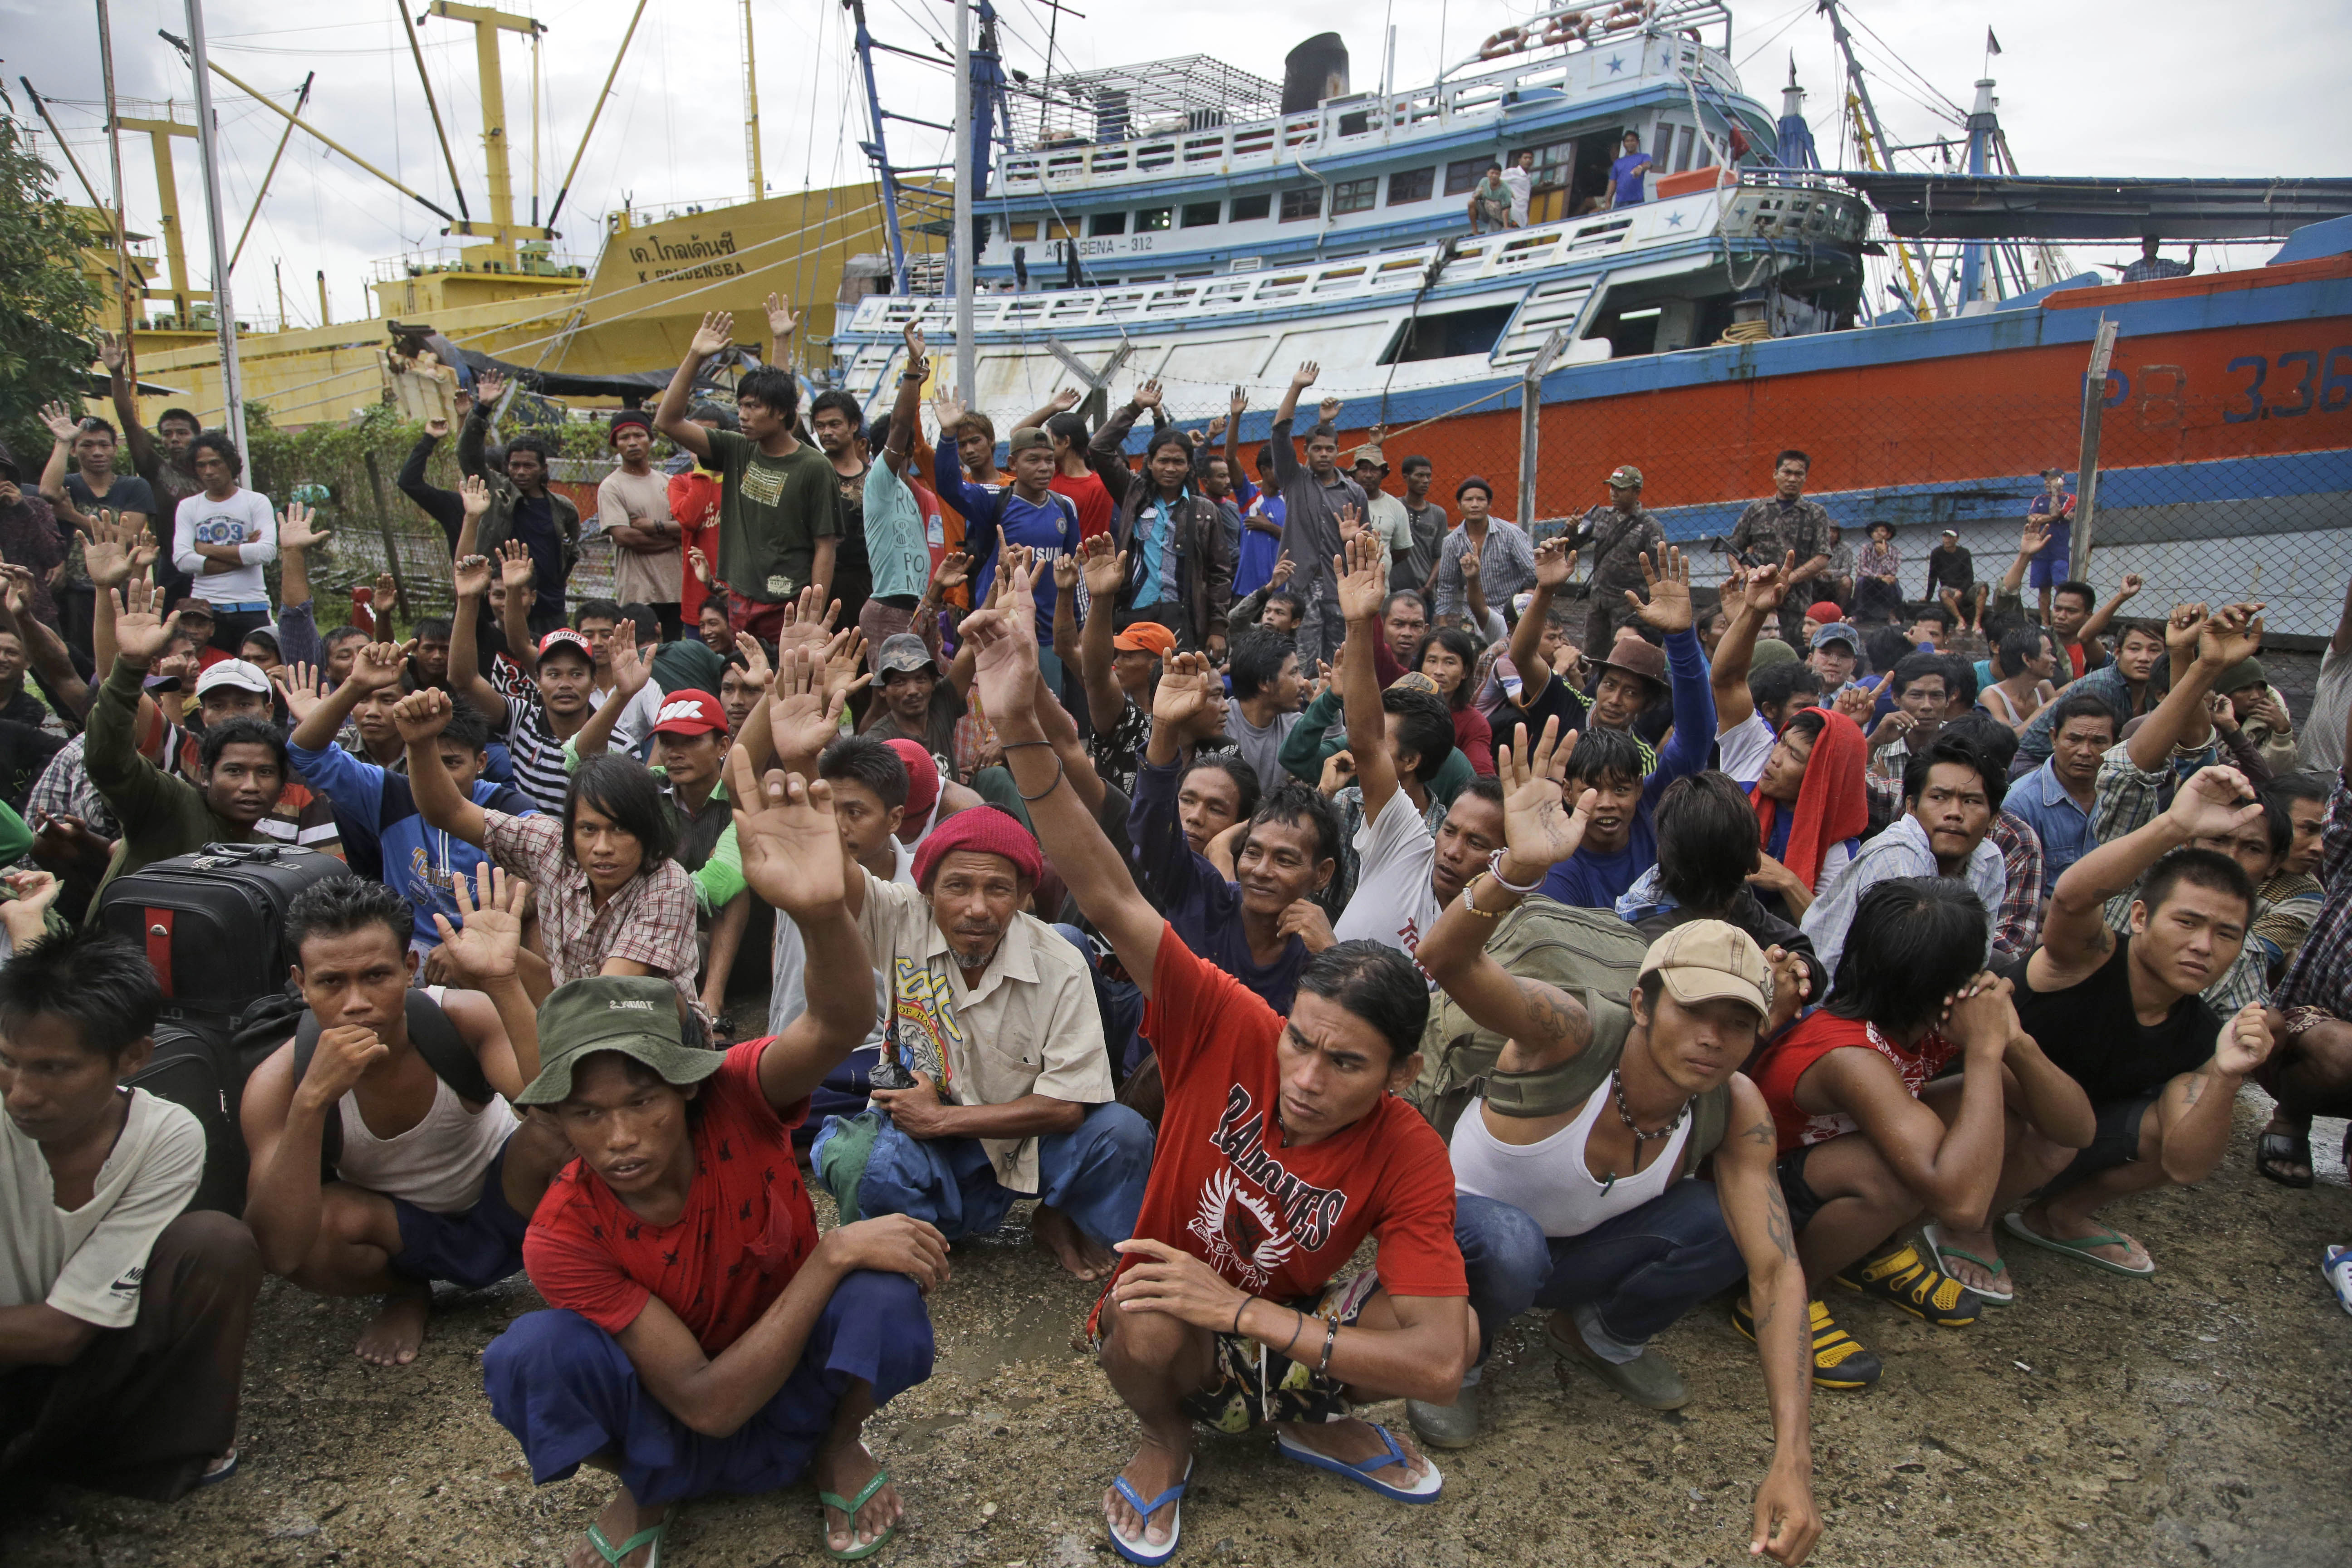 FILE - In this Friday, April 3, 2015 file photo, Burmese fishermen raise their hands as they are asked who among them wants to go home at the compound of Pusaka Benjina Resources fishing company in Benjina, Aru Islands, Indonesia. On Thursday, March 10, 2016, five Thai fishing boat captains and three Indonesians were sentenced to three years in jail for human trafficking in connection with slavery in the seafood industry. The suspects were arrested in the remote island village of Benjina in May 2015 after the abuse was revealed by The Associated Press in a report two months earlier. (AP Photo/Dita Alangkara)